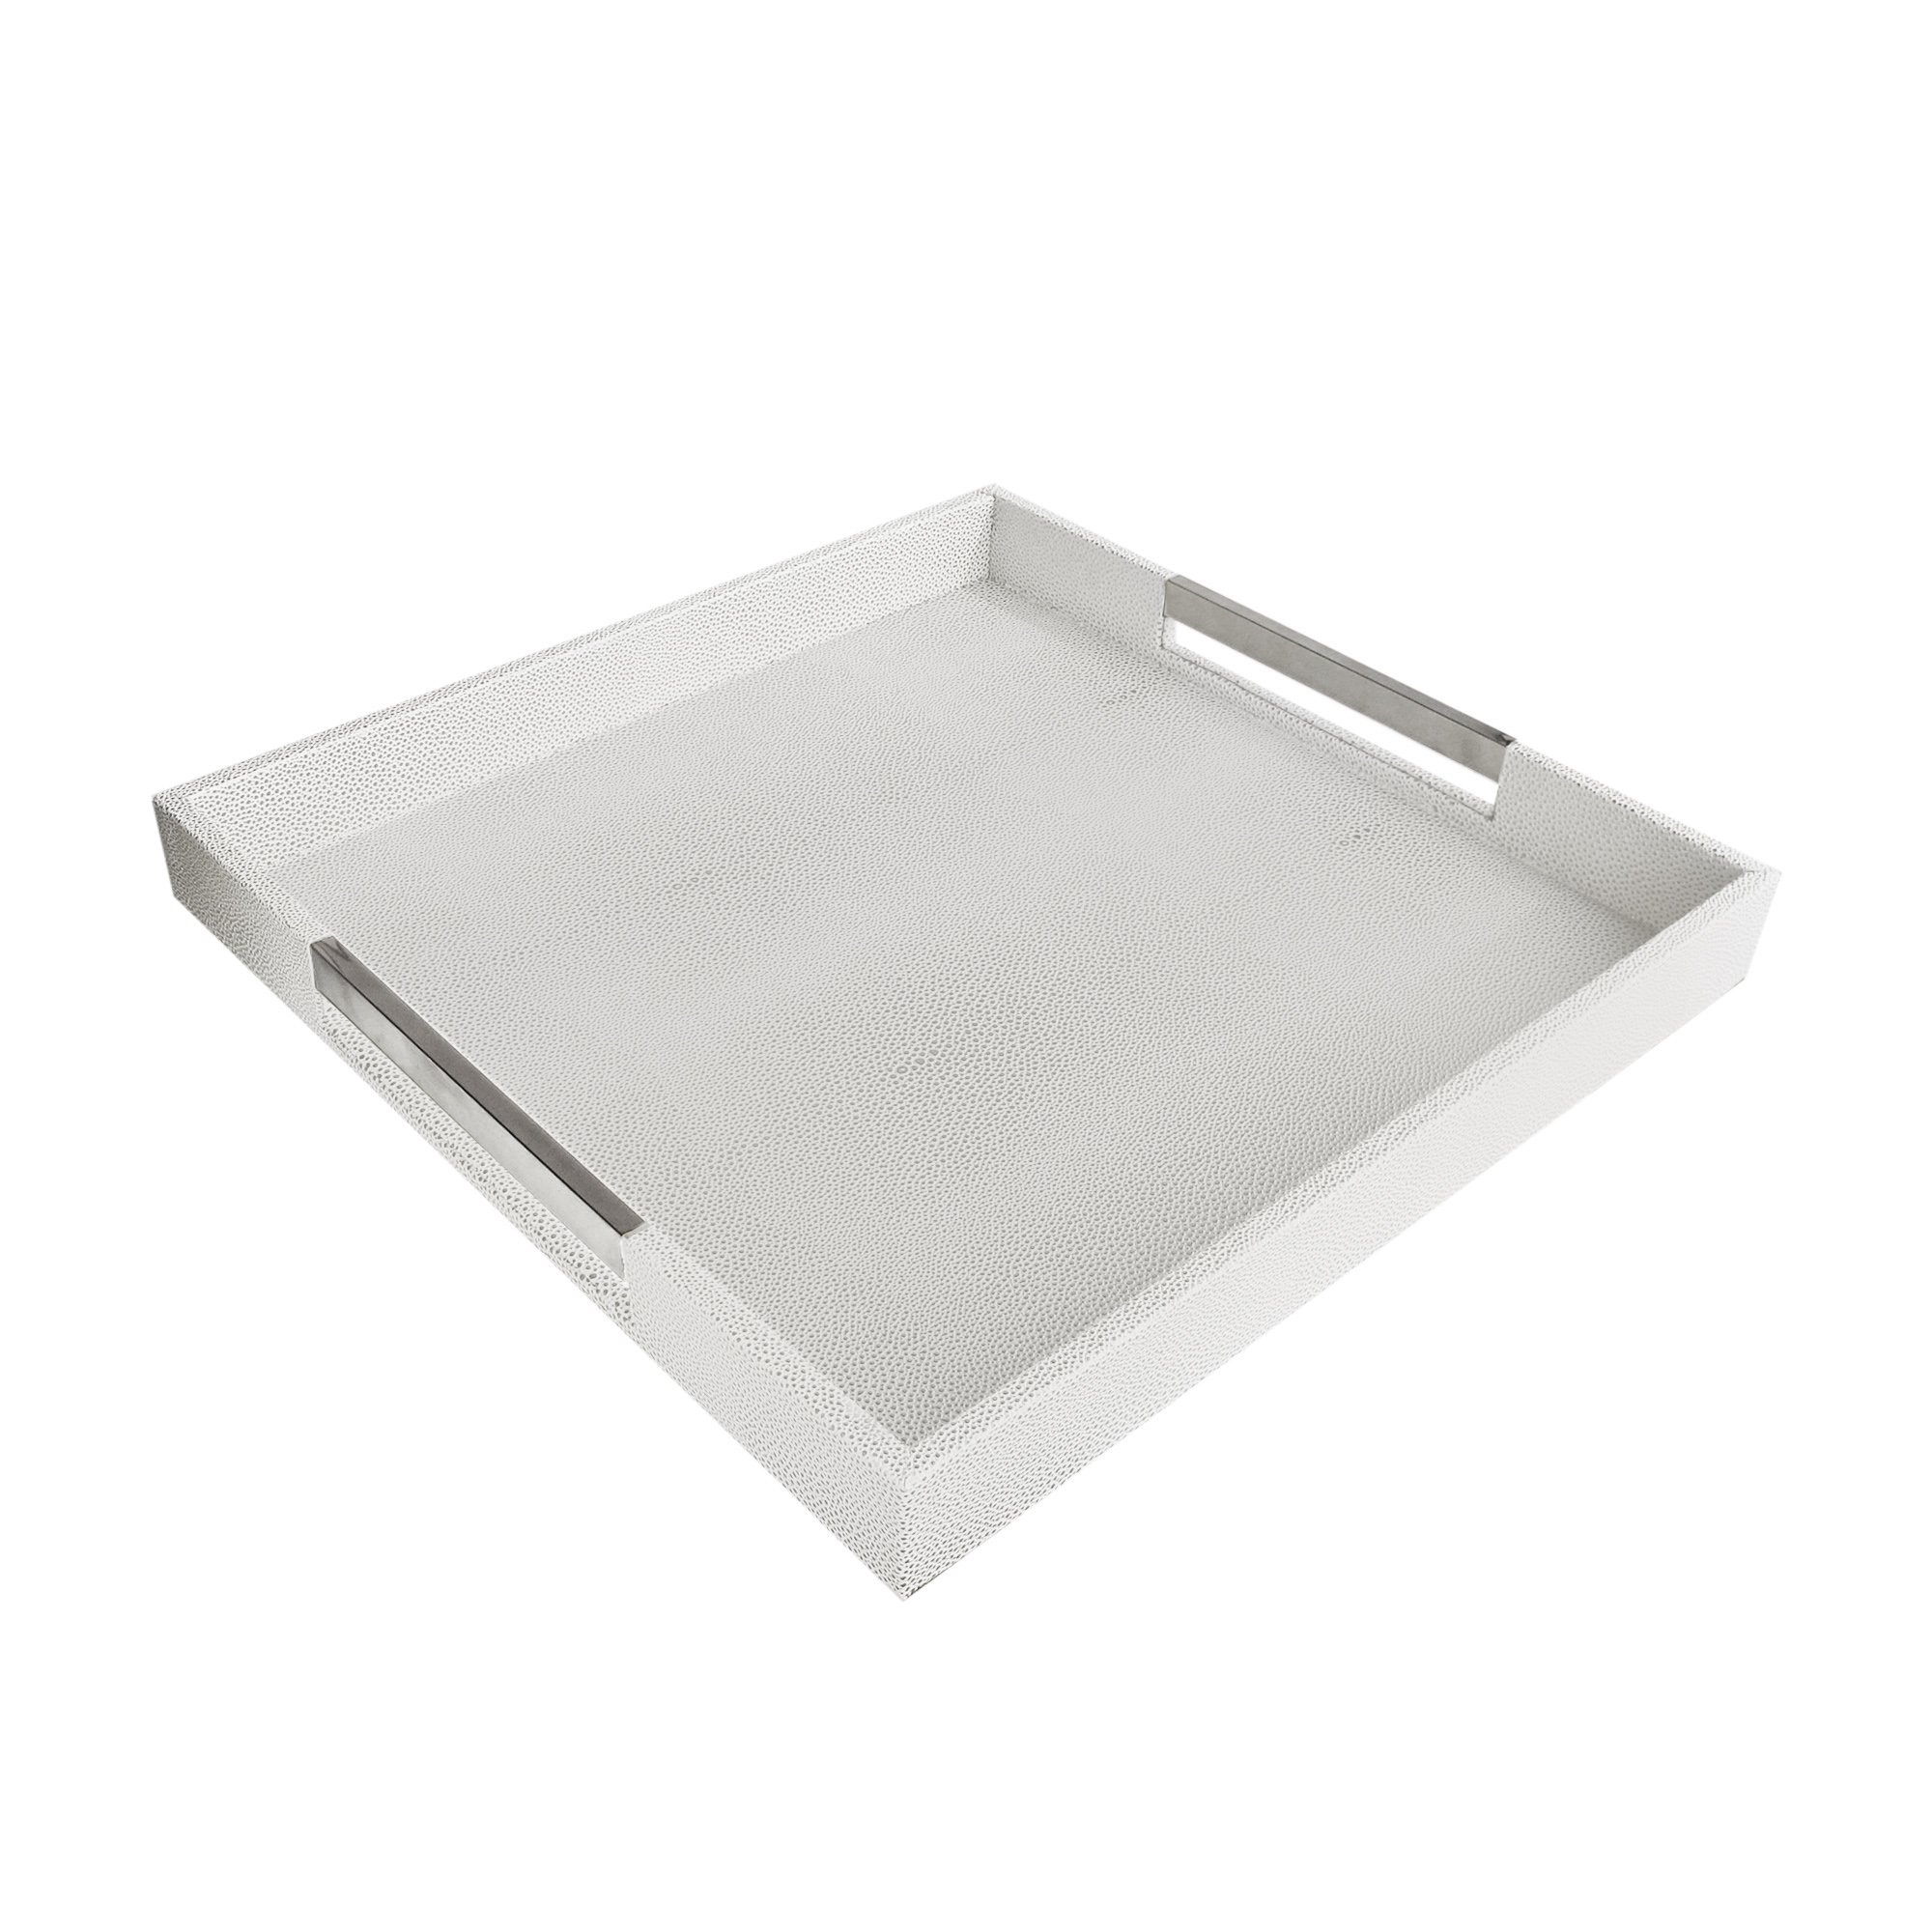 American Atelier 1630006 White & Gray Square Tray with Silver Handles